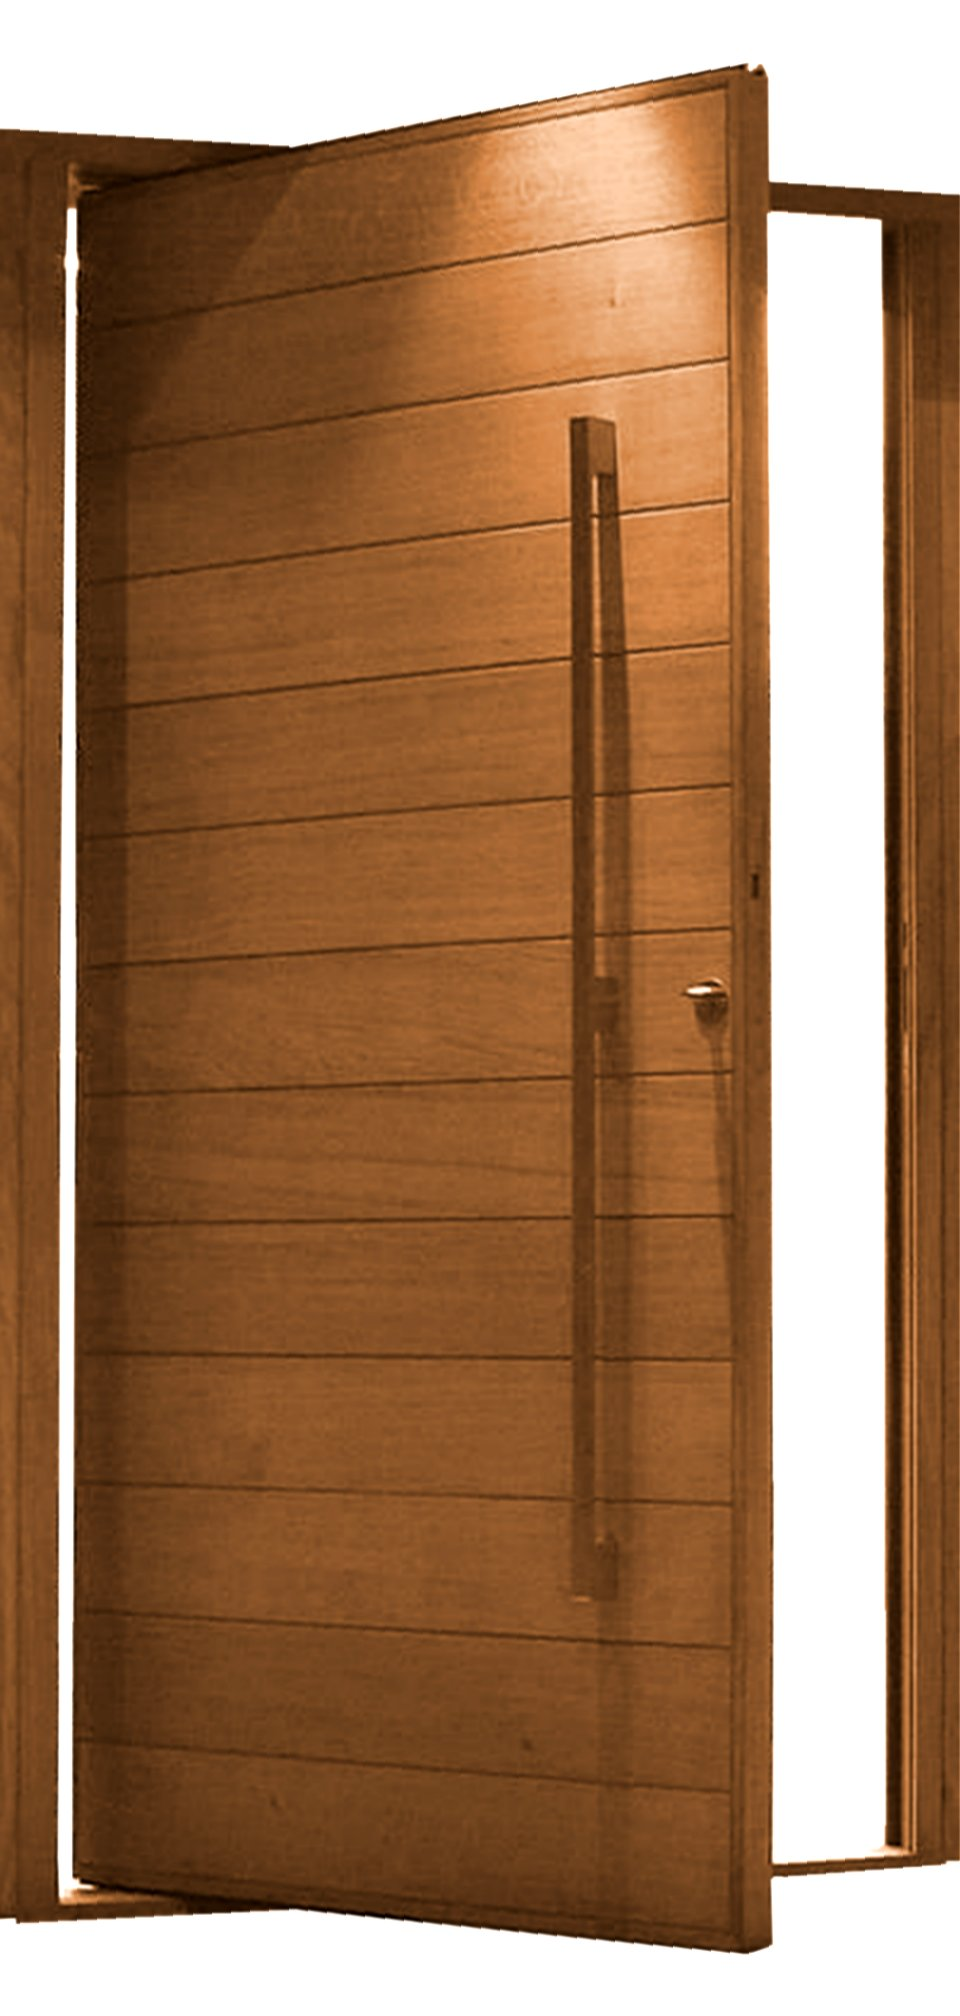 How to Build the Best Large Pivot Entry Door